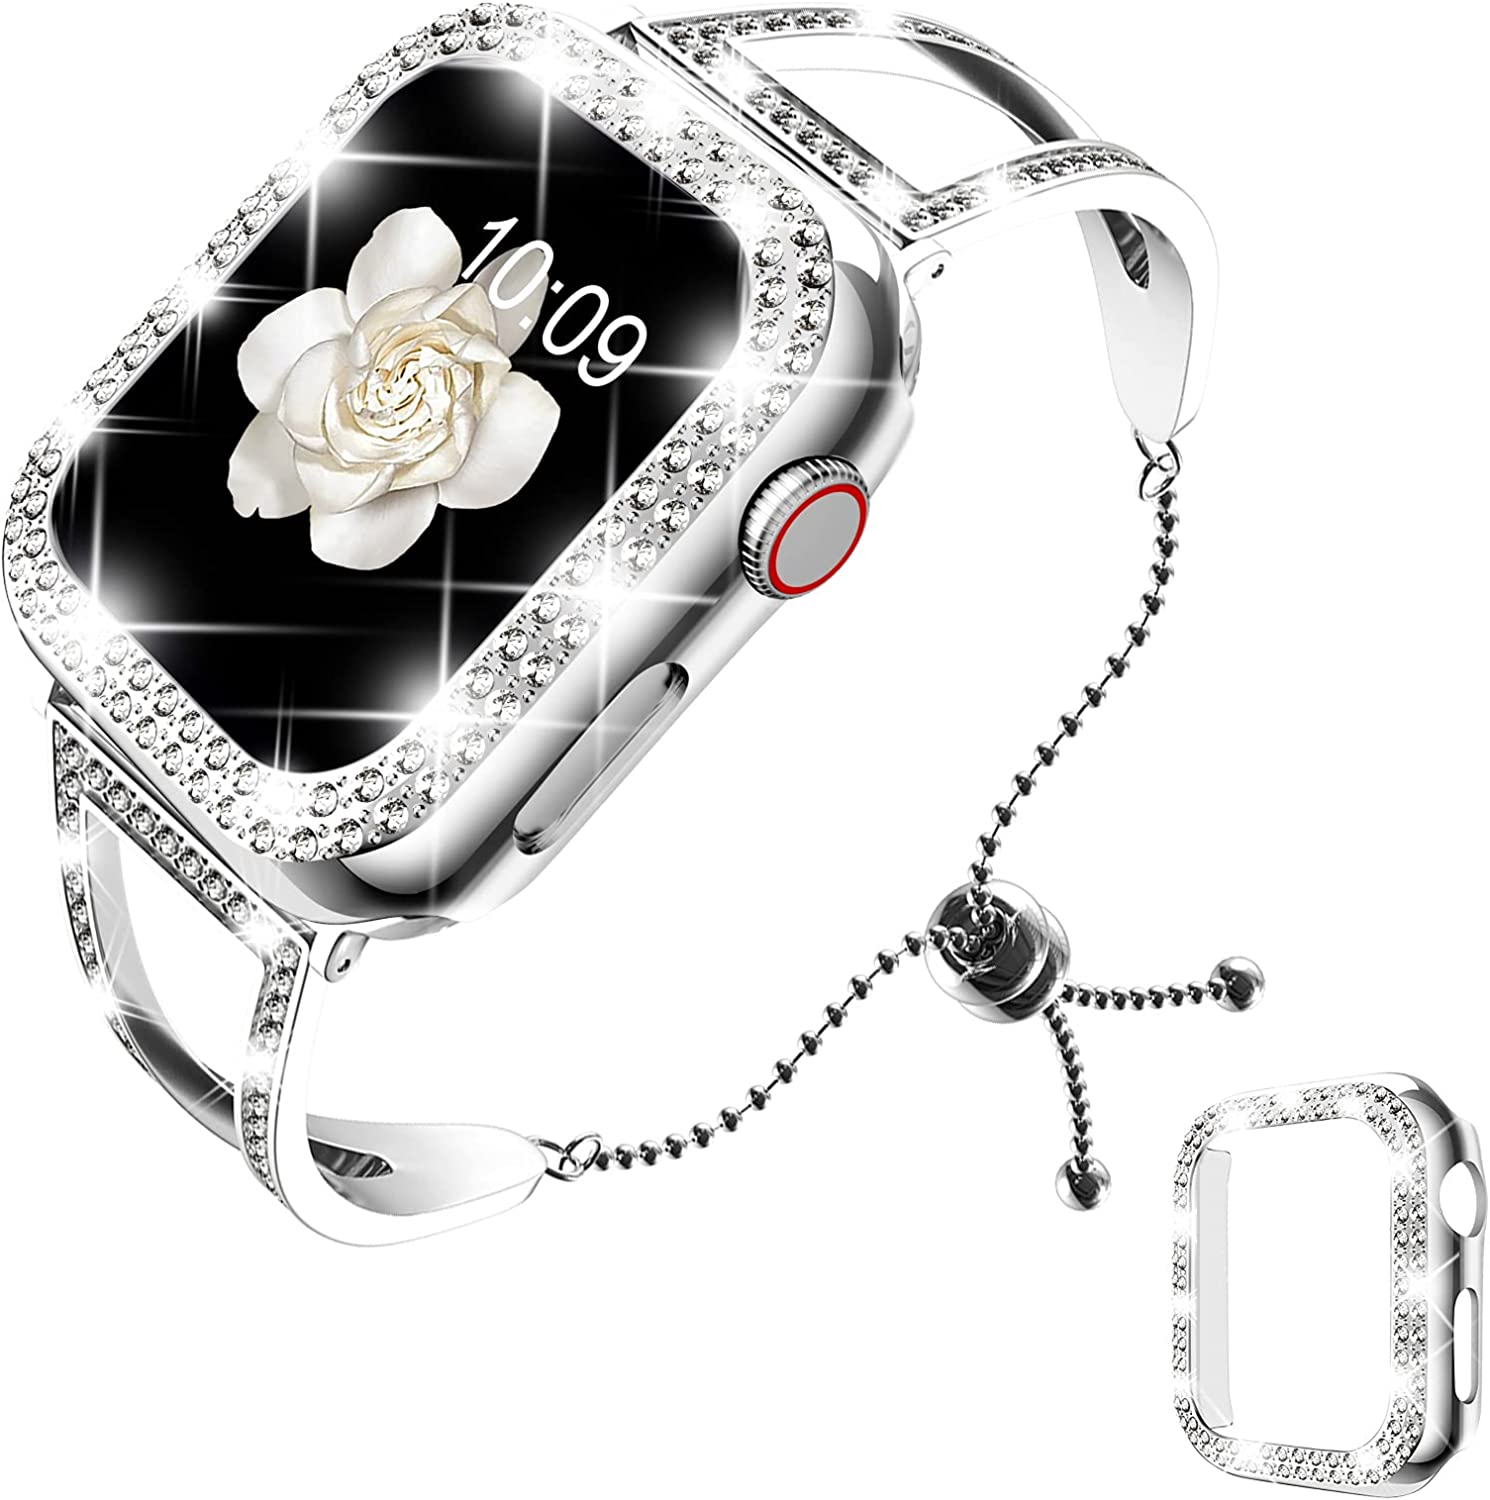 DABAOZA Compatible with Apple Watch Band 38mm 42mm with Case, Bling Women Dressy Bracelet Stainless Steel Band with Shiny Protective Bling Bumper Frame Cover for iWatch Series 3 2 1